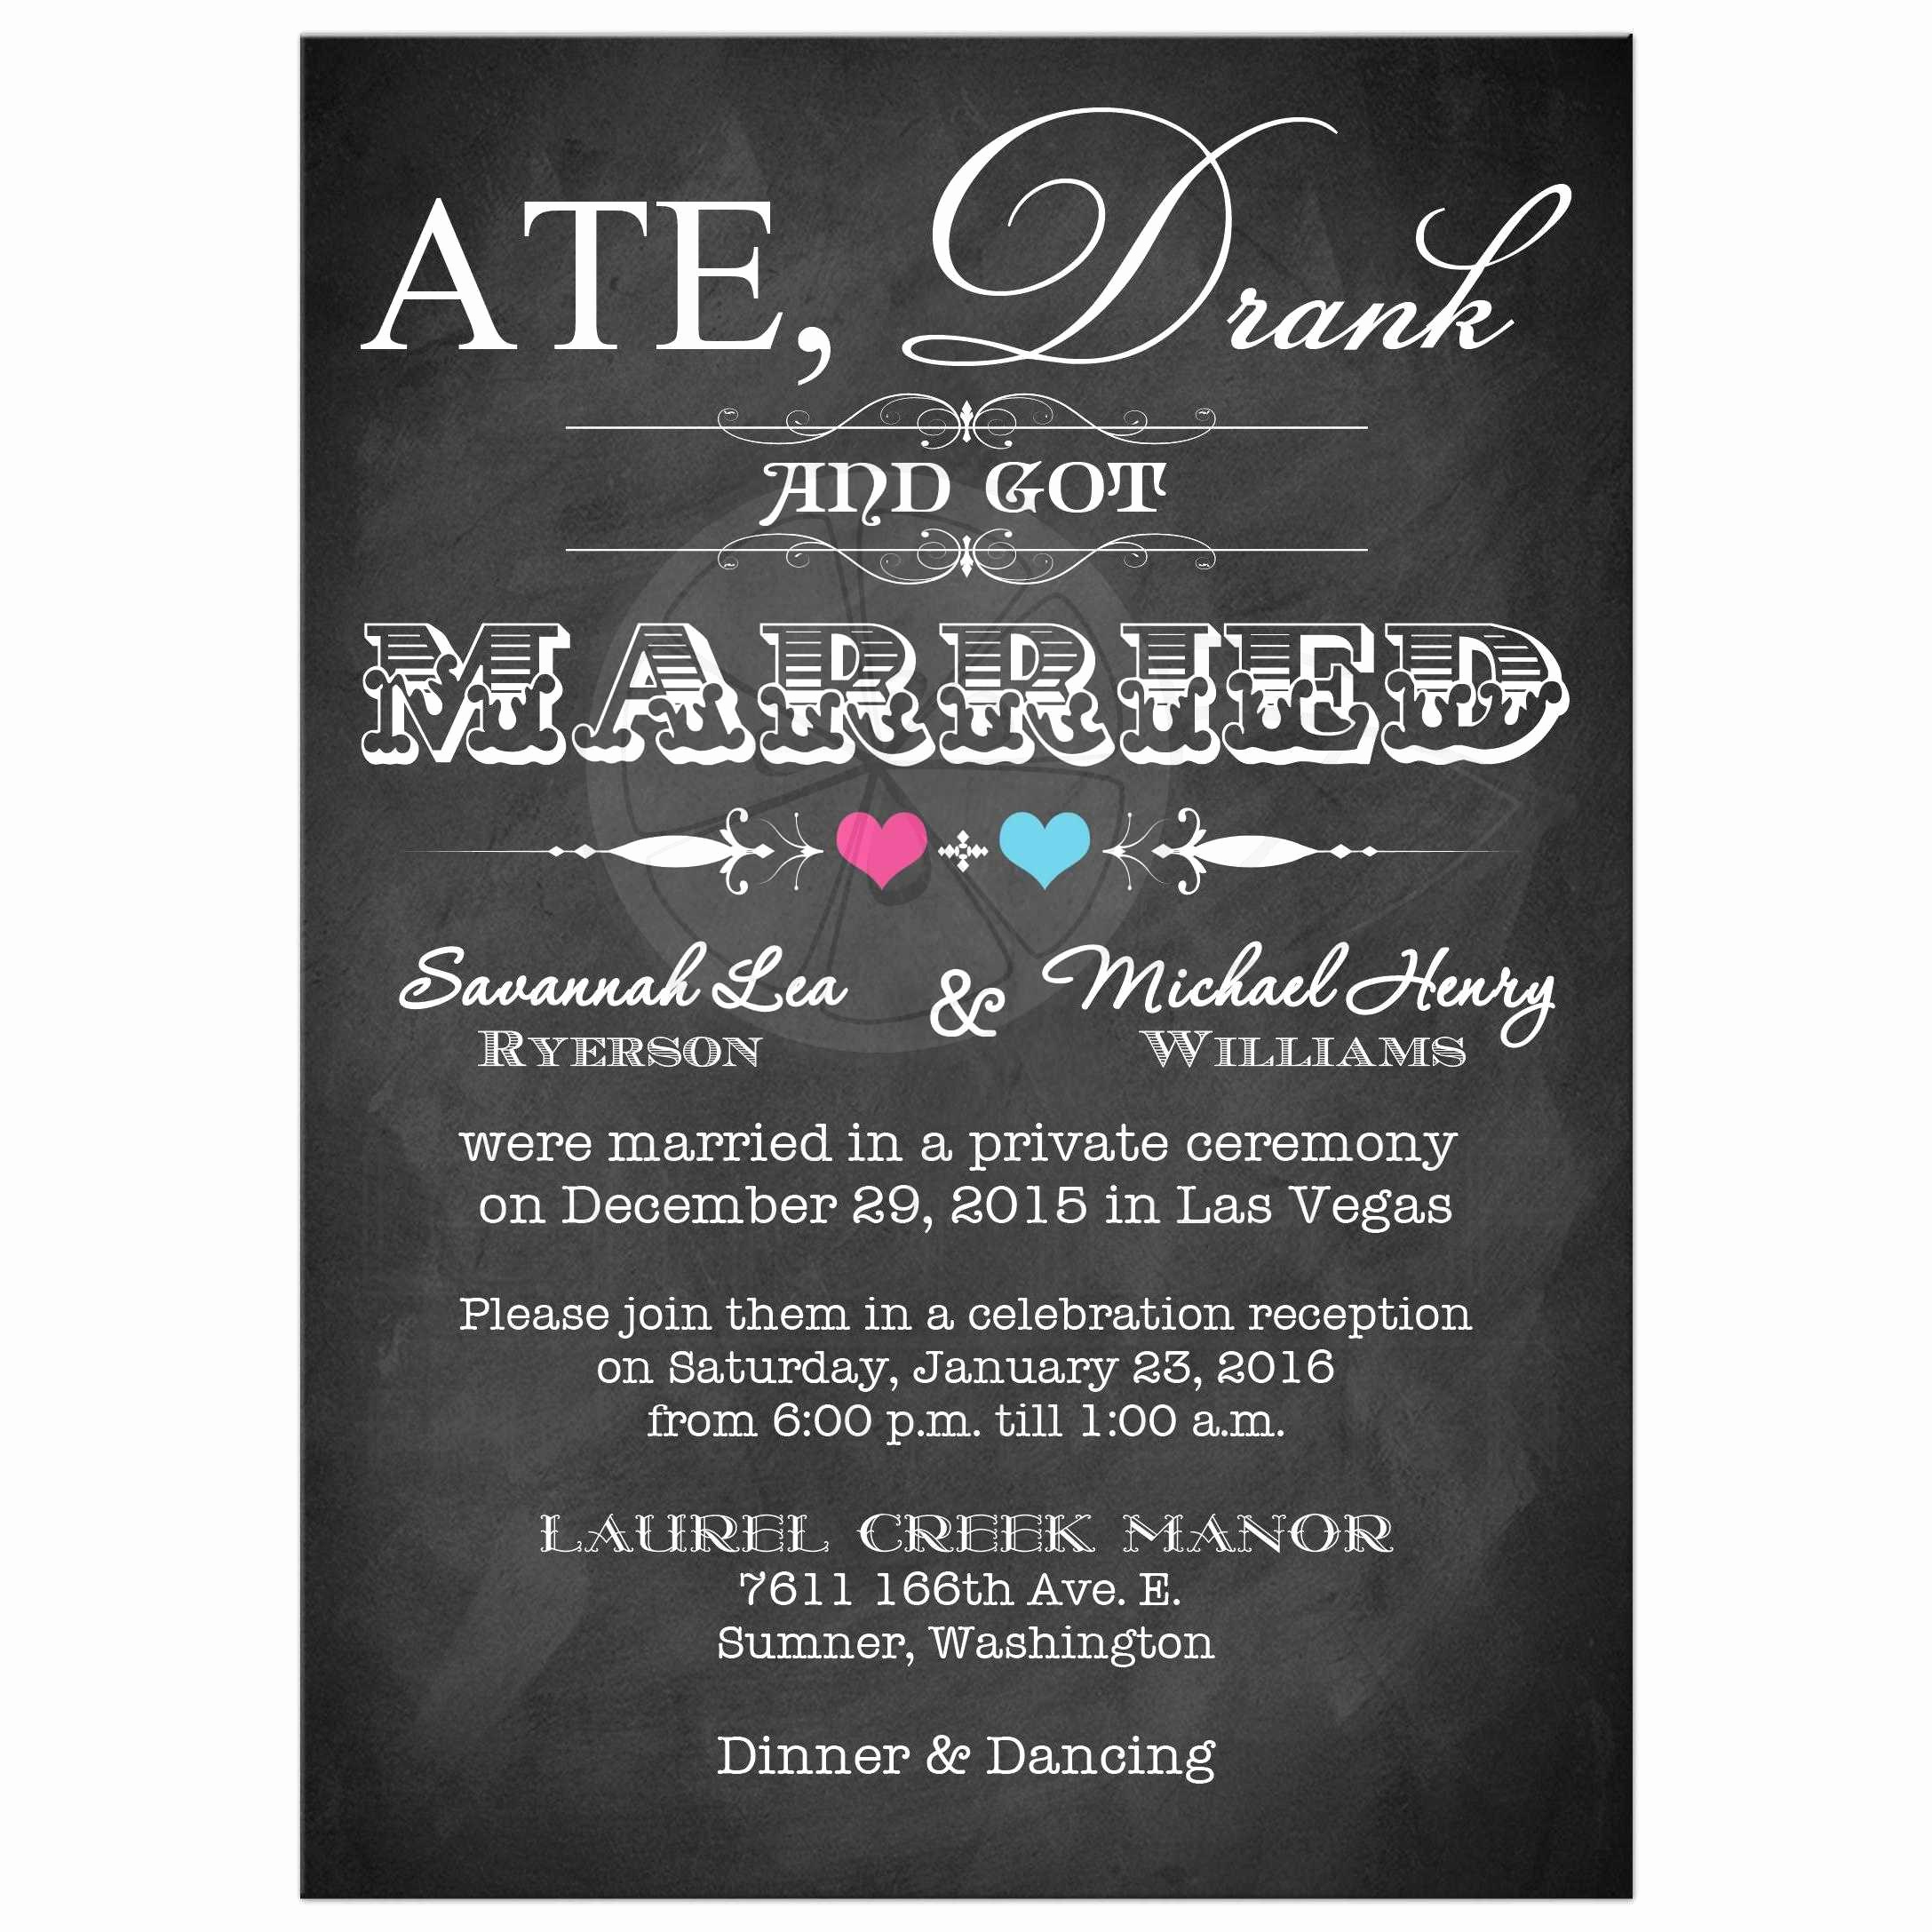 Wedding Reception Invitation Ideas Inspirational Post Wedding Invitation Chalkboard Scrolls